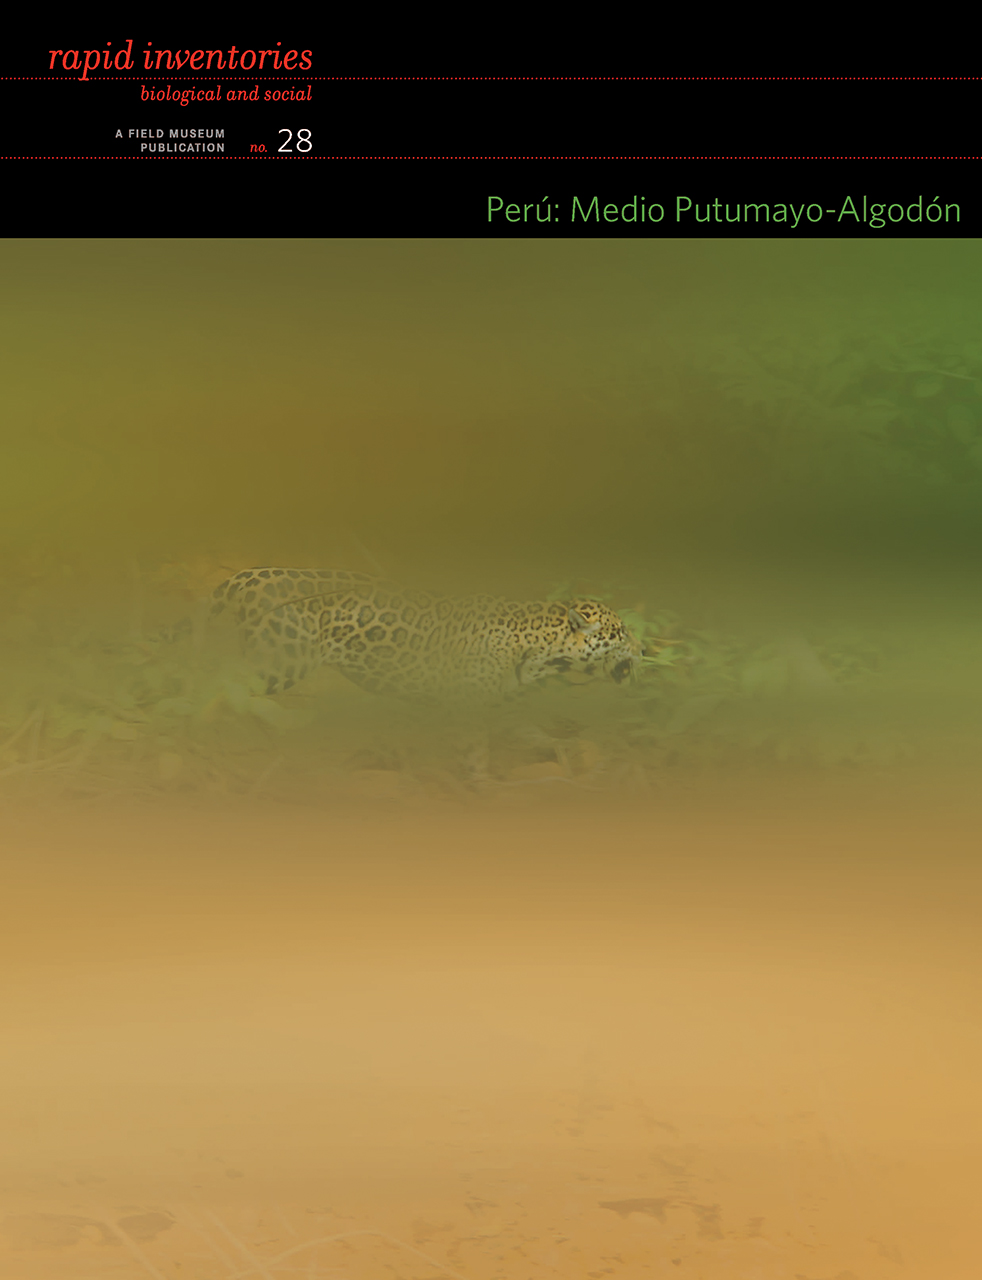 Perú: Medio Putumayo-Algodón: Rapid Biological and Social Inventories Report 28